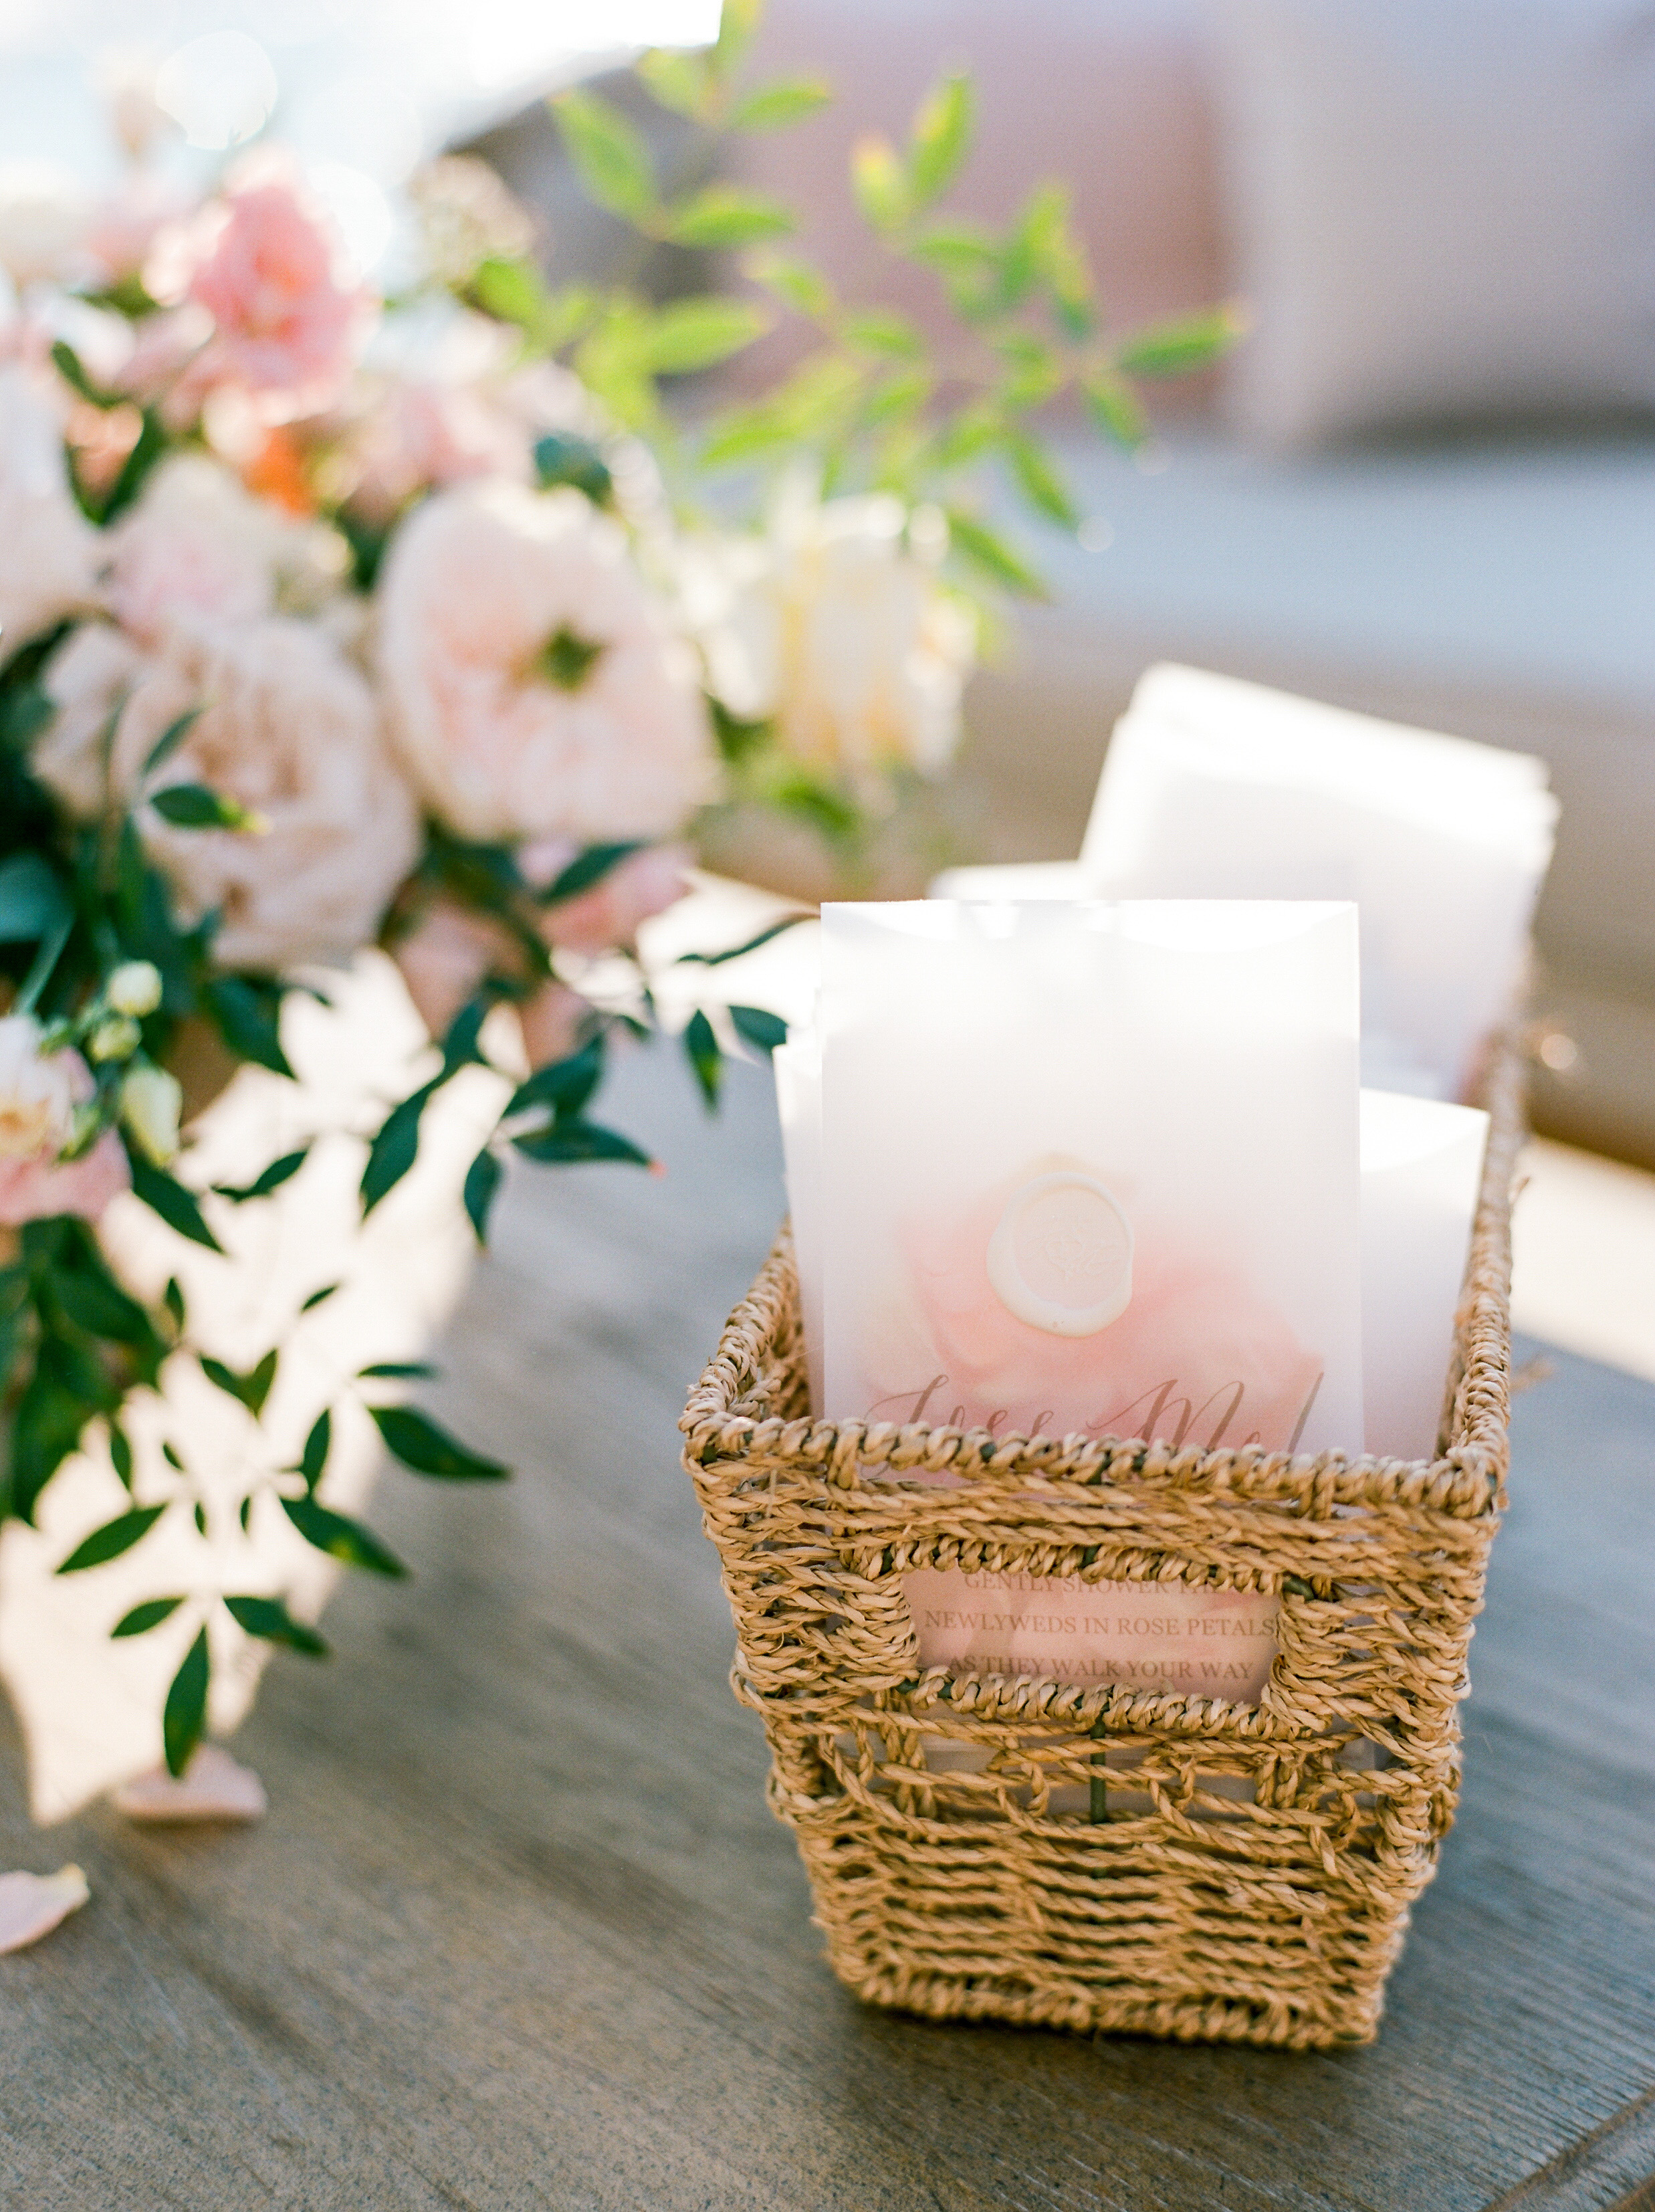 Rose Petal Packets